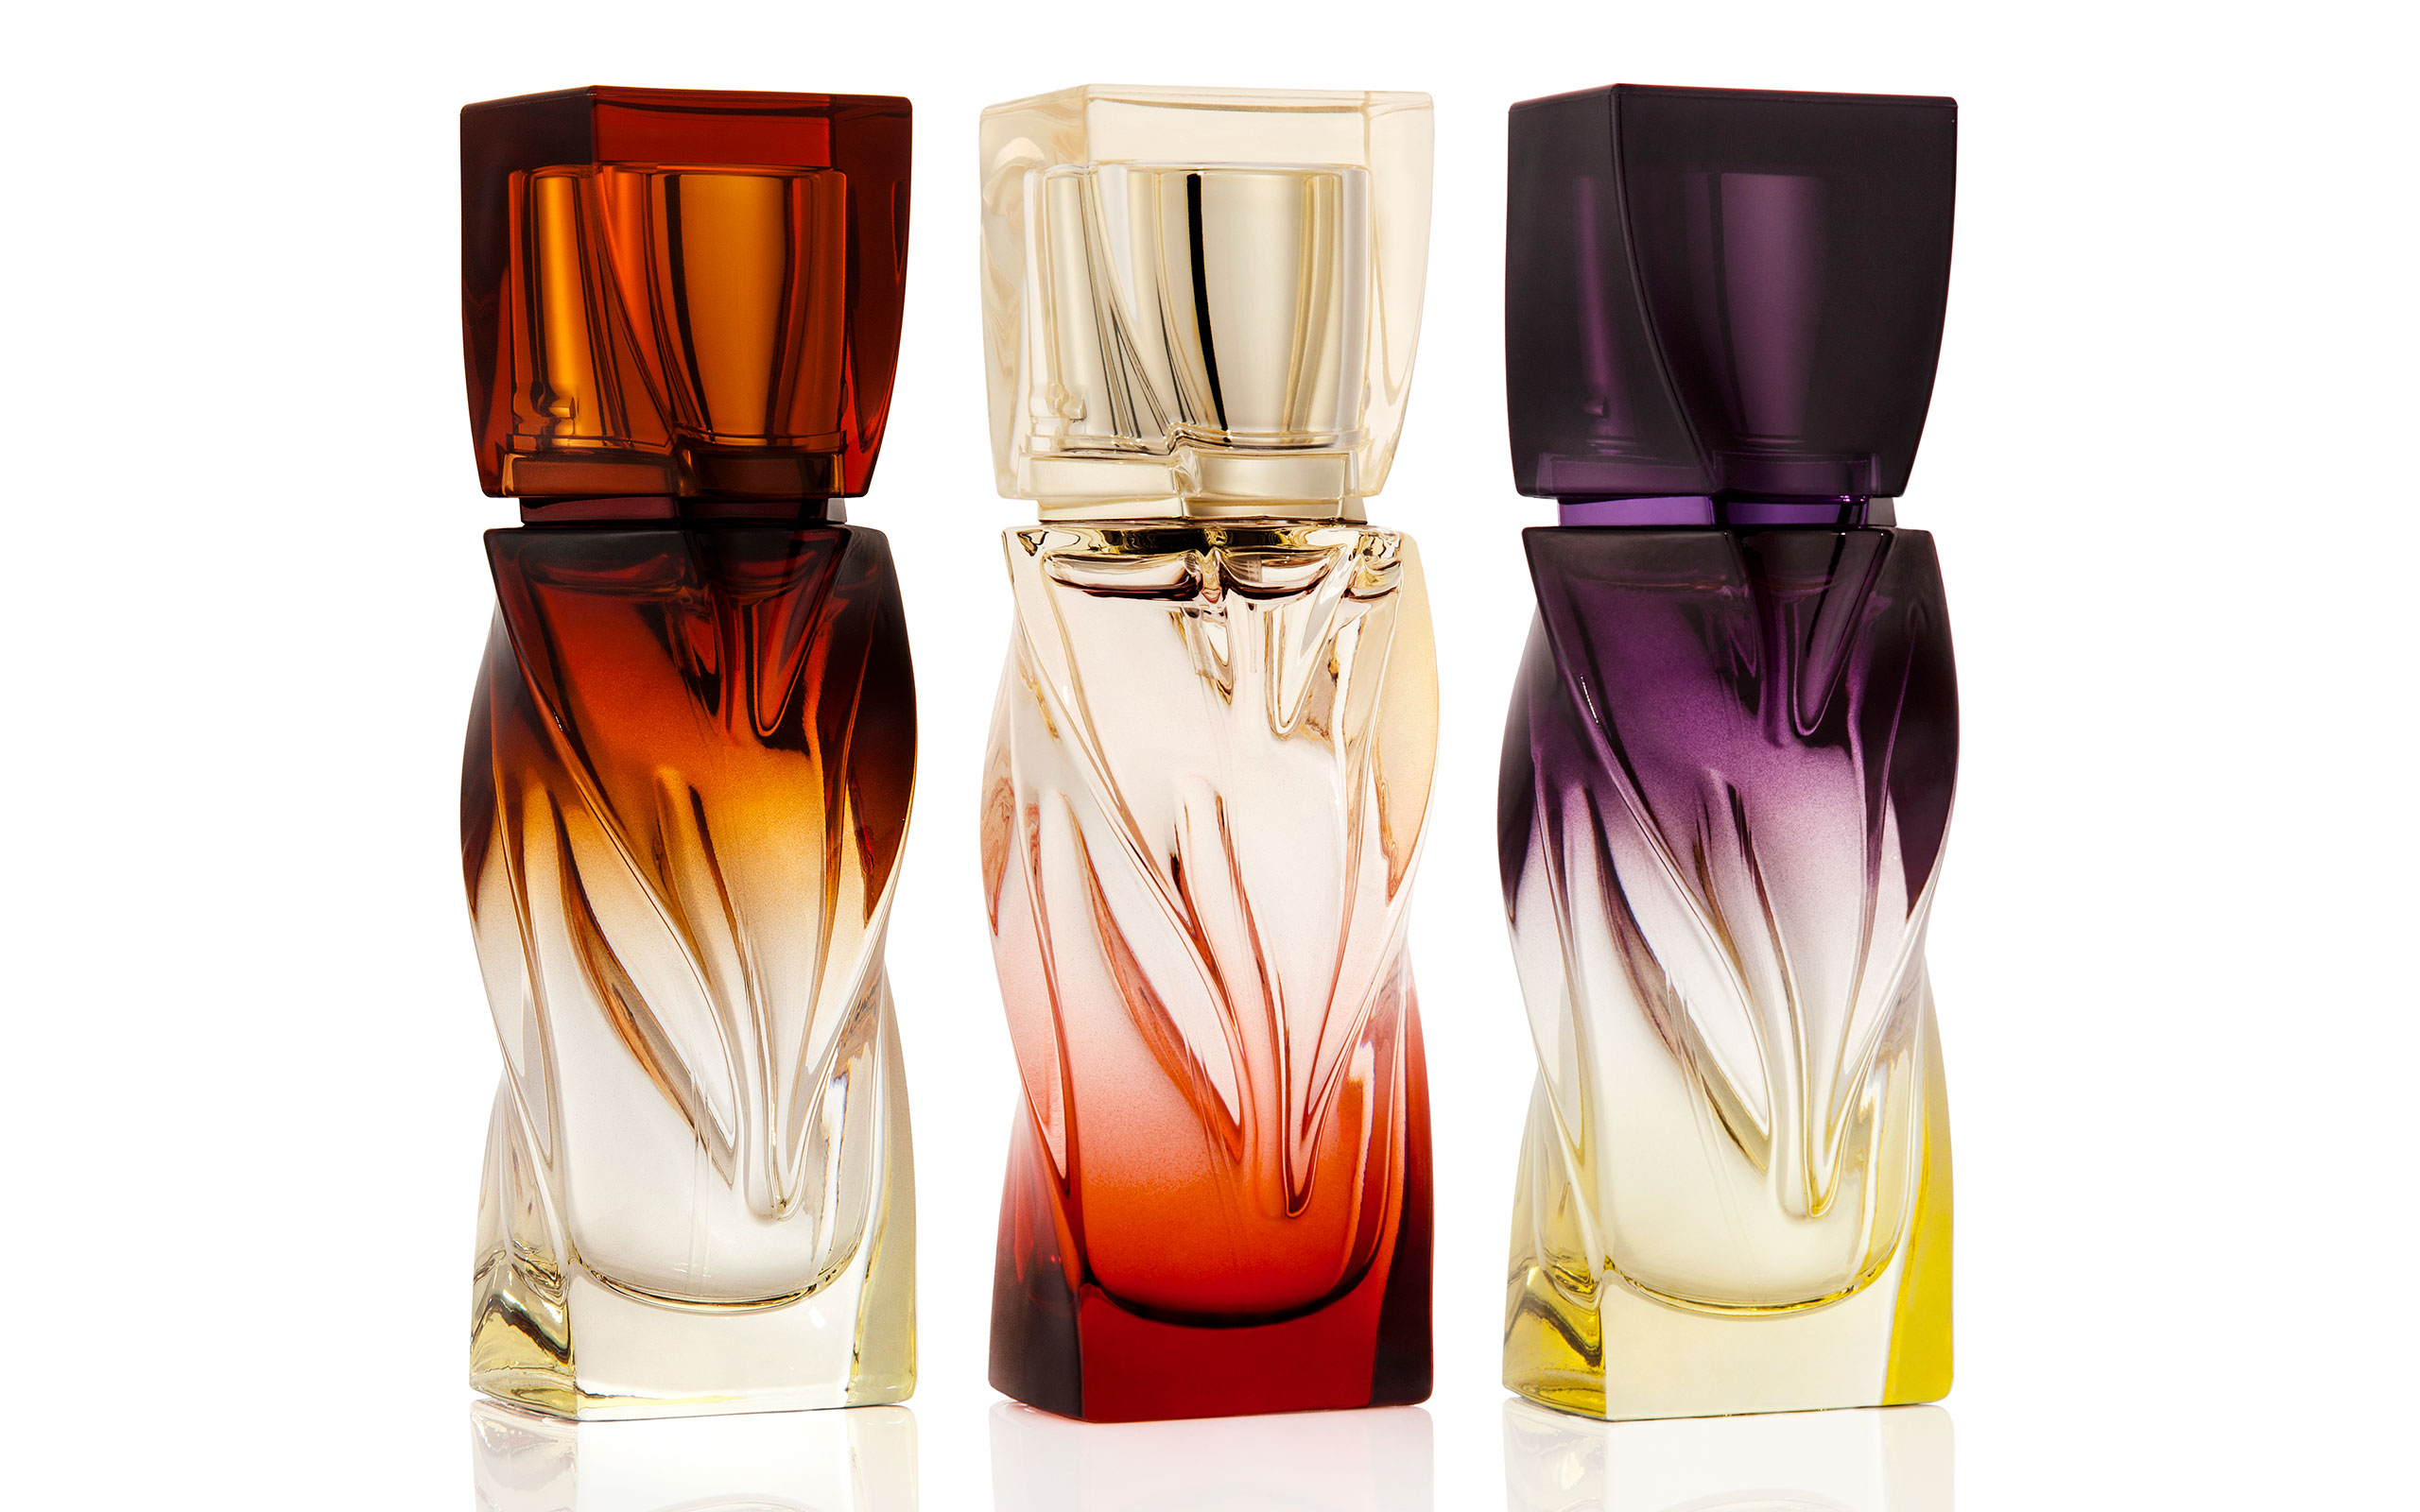 Christian Louboutin Parfum: A New Bottle, A New Object Of Desire